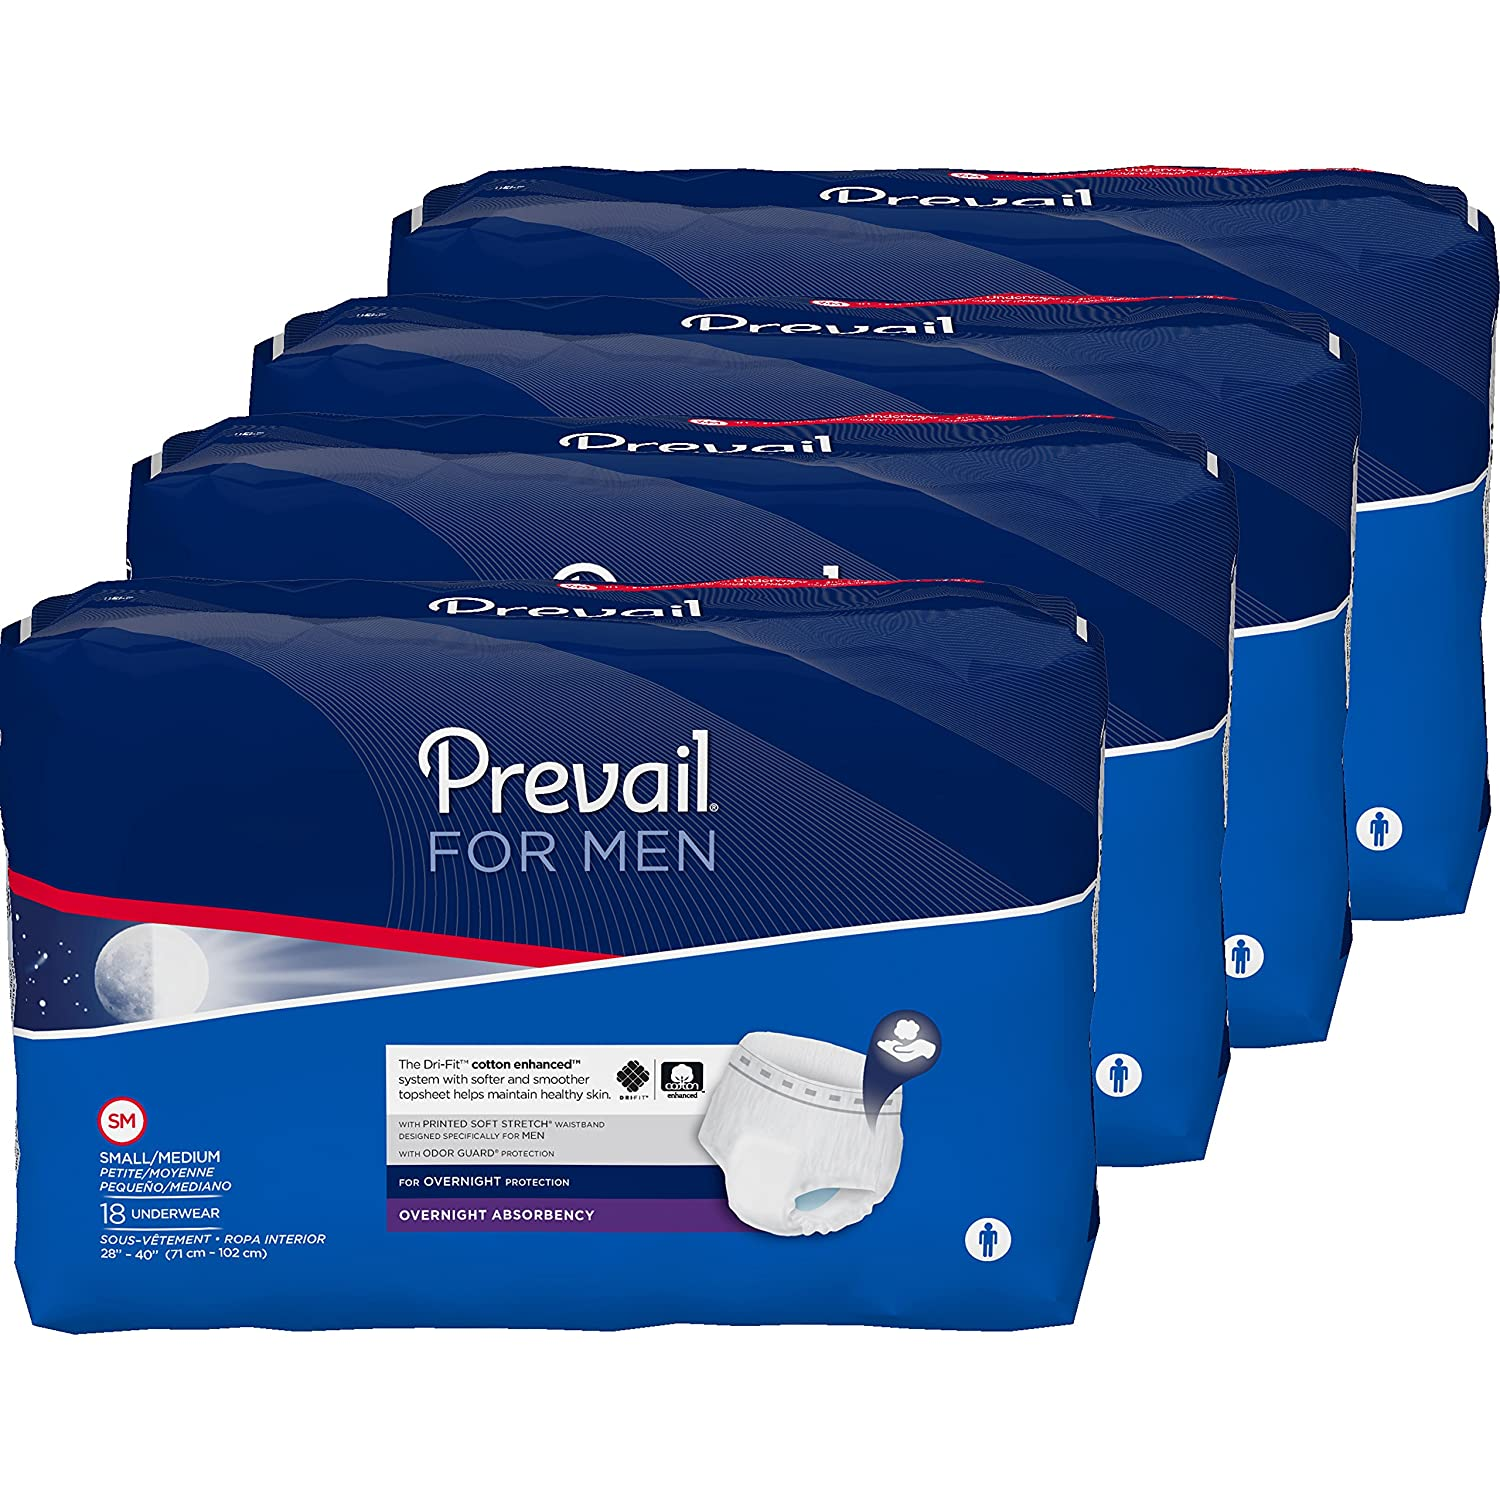 Amazon.com: Prevail for Men Underwear Overnight Absorbency, Small/Medium, 72 Count: Health & Personal Care